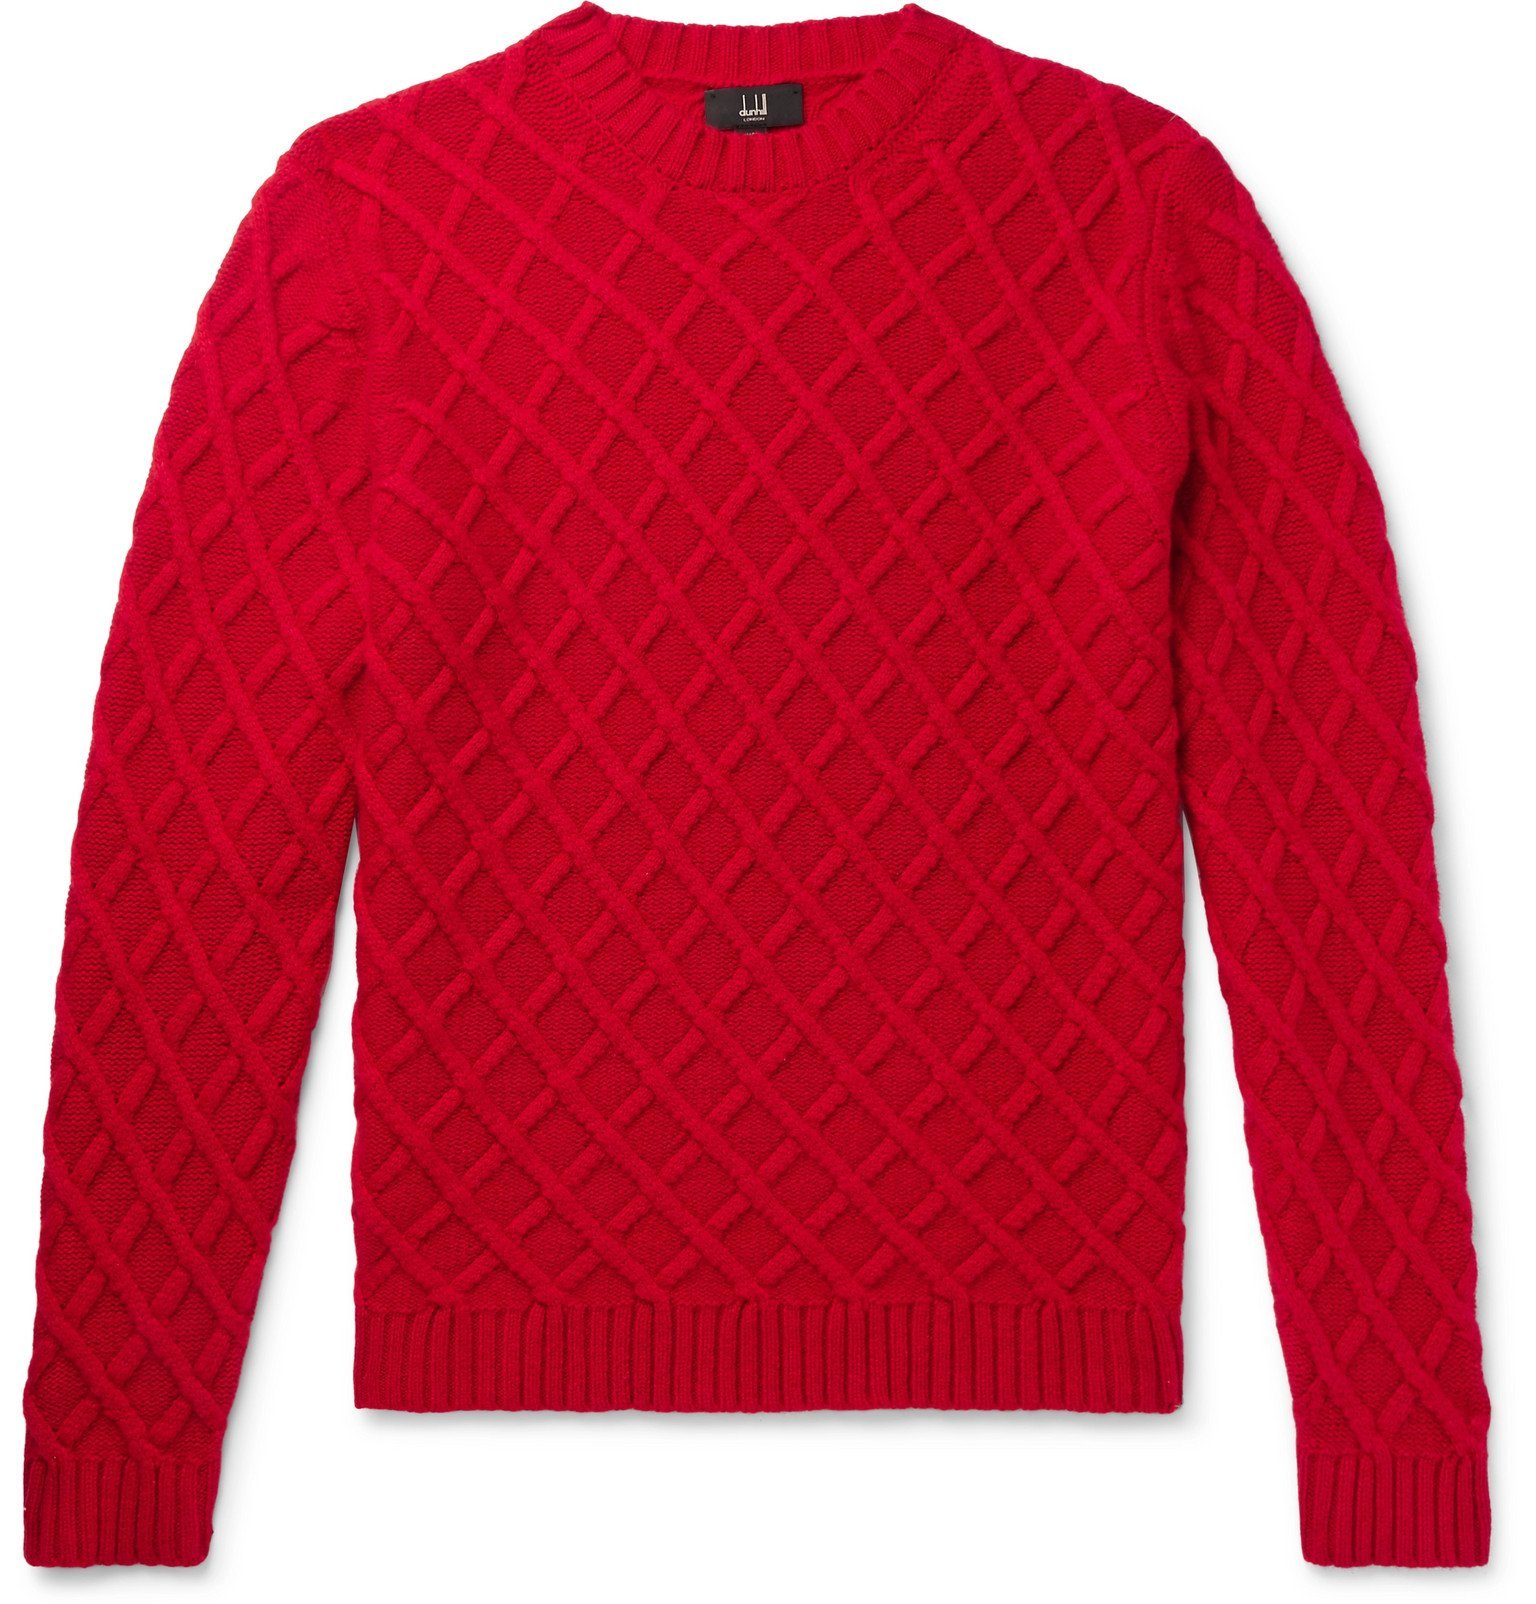 Dunhill - Slim-Fit Cable-Knit Cashmere Sweater - Red